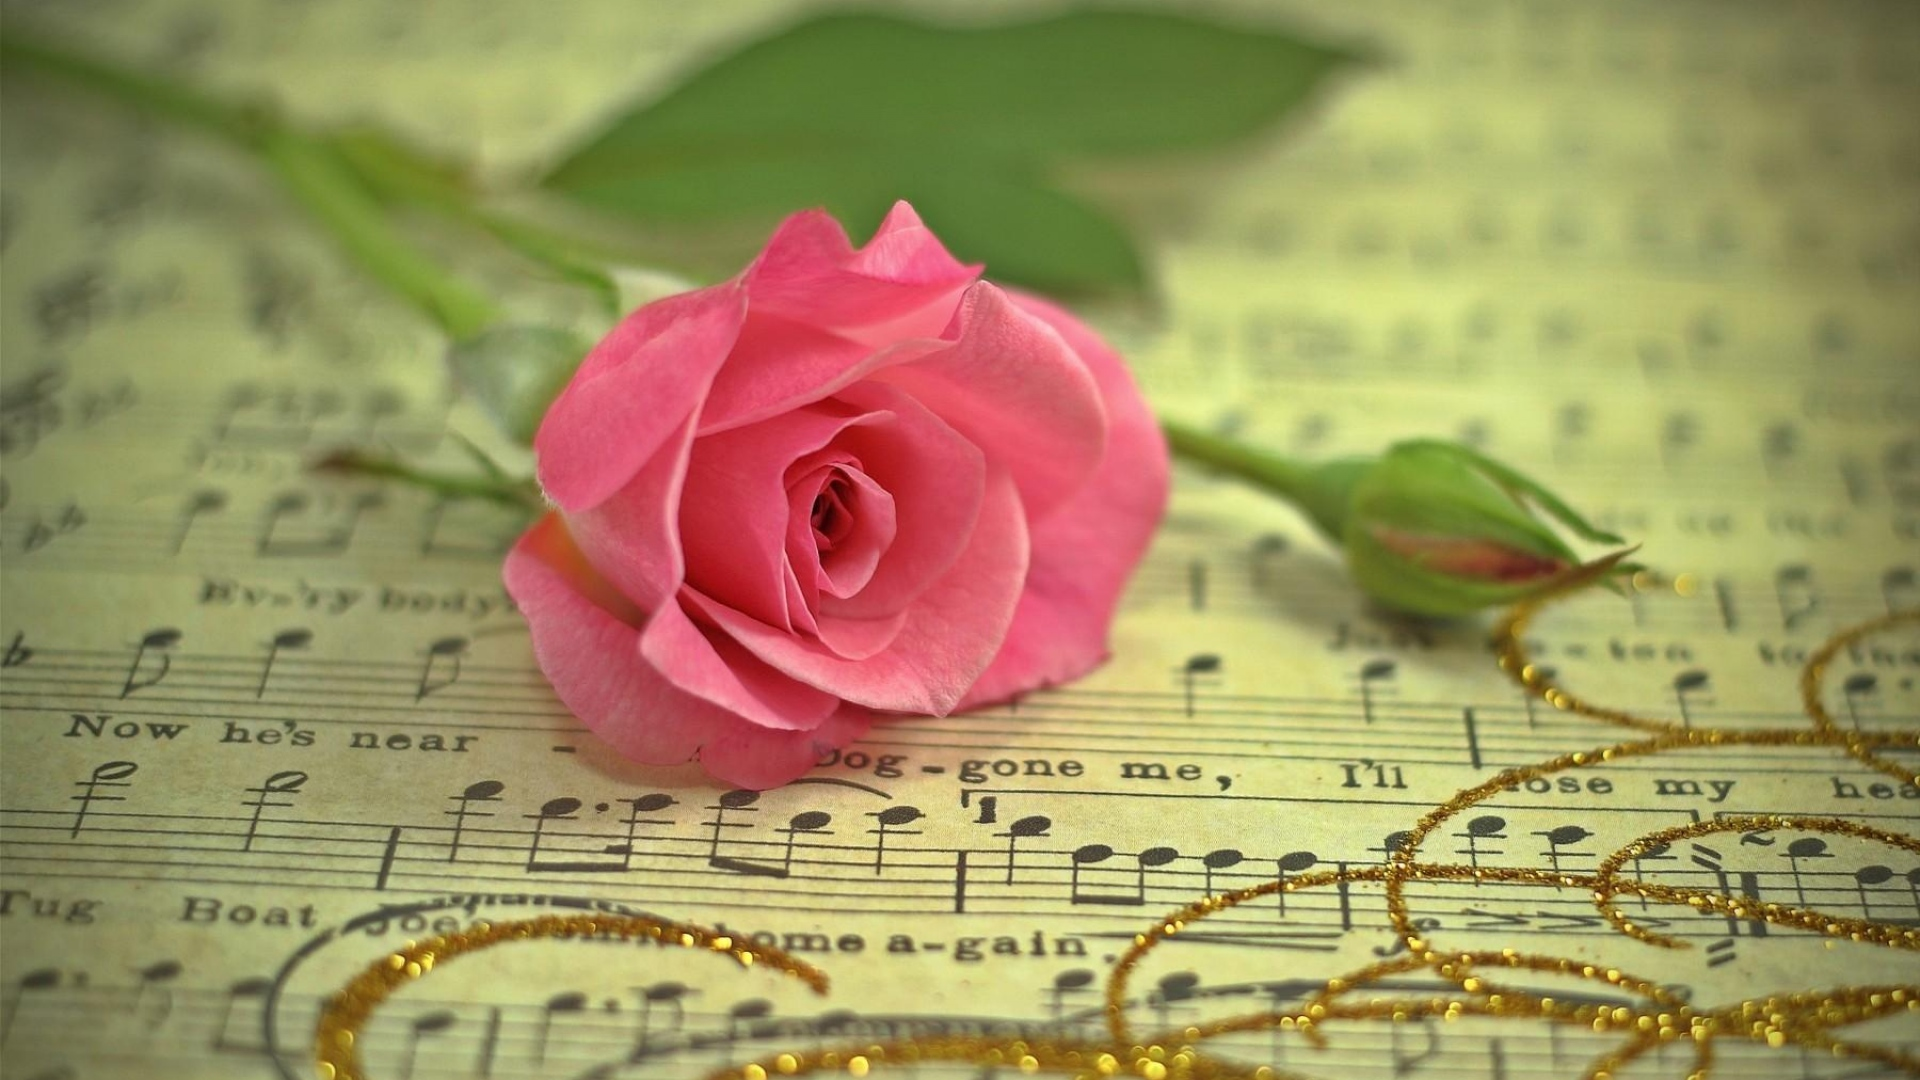 Great Wallpaper Music Rose - rose_flower_music_thread_gold_42776_1920x1080  Pictures_734850.jpg